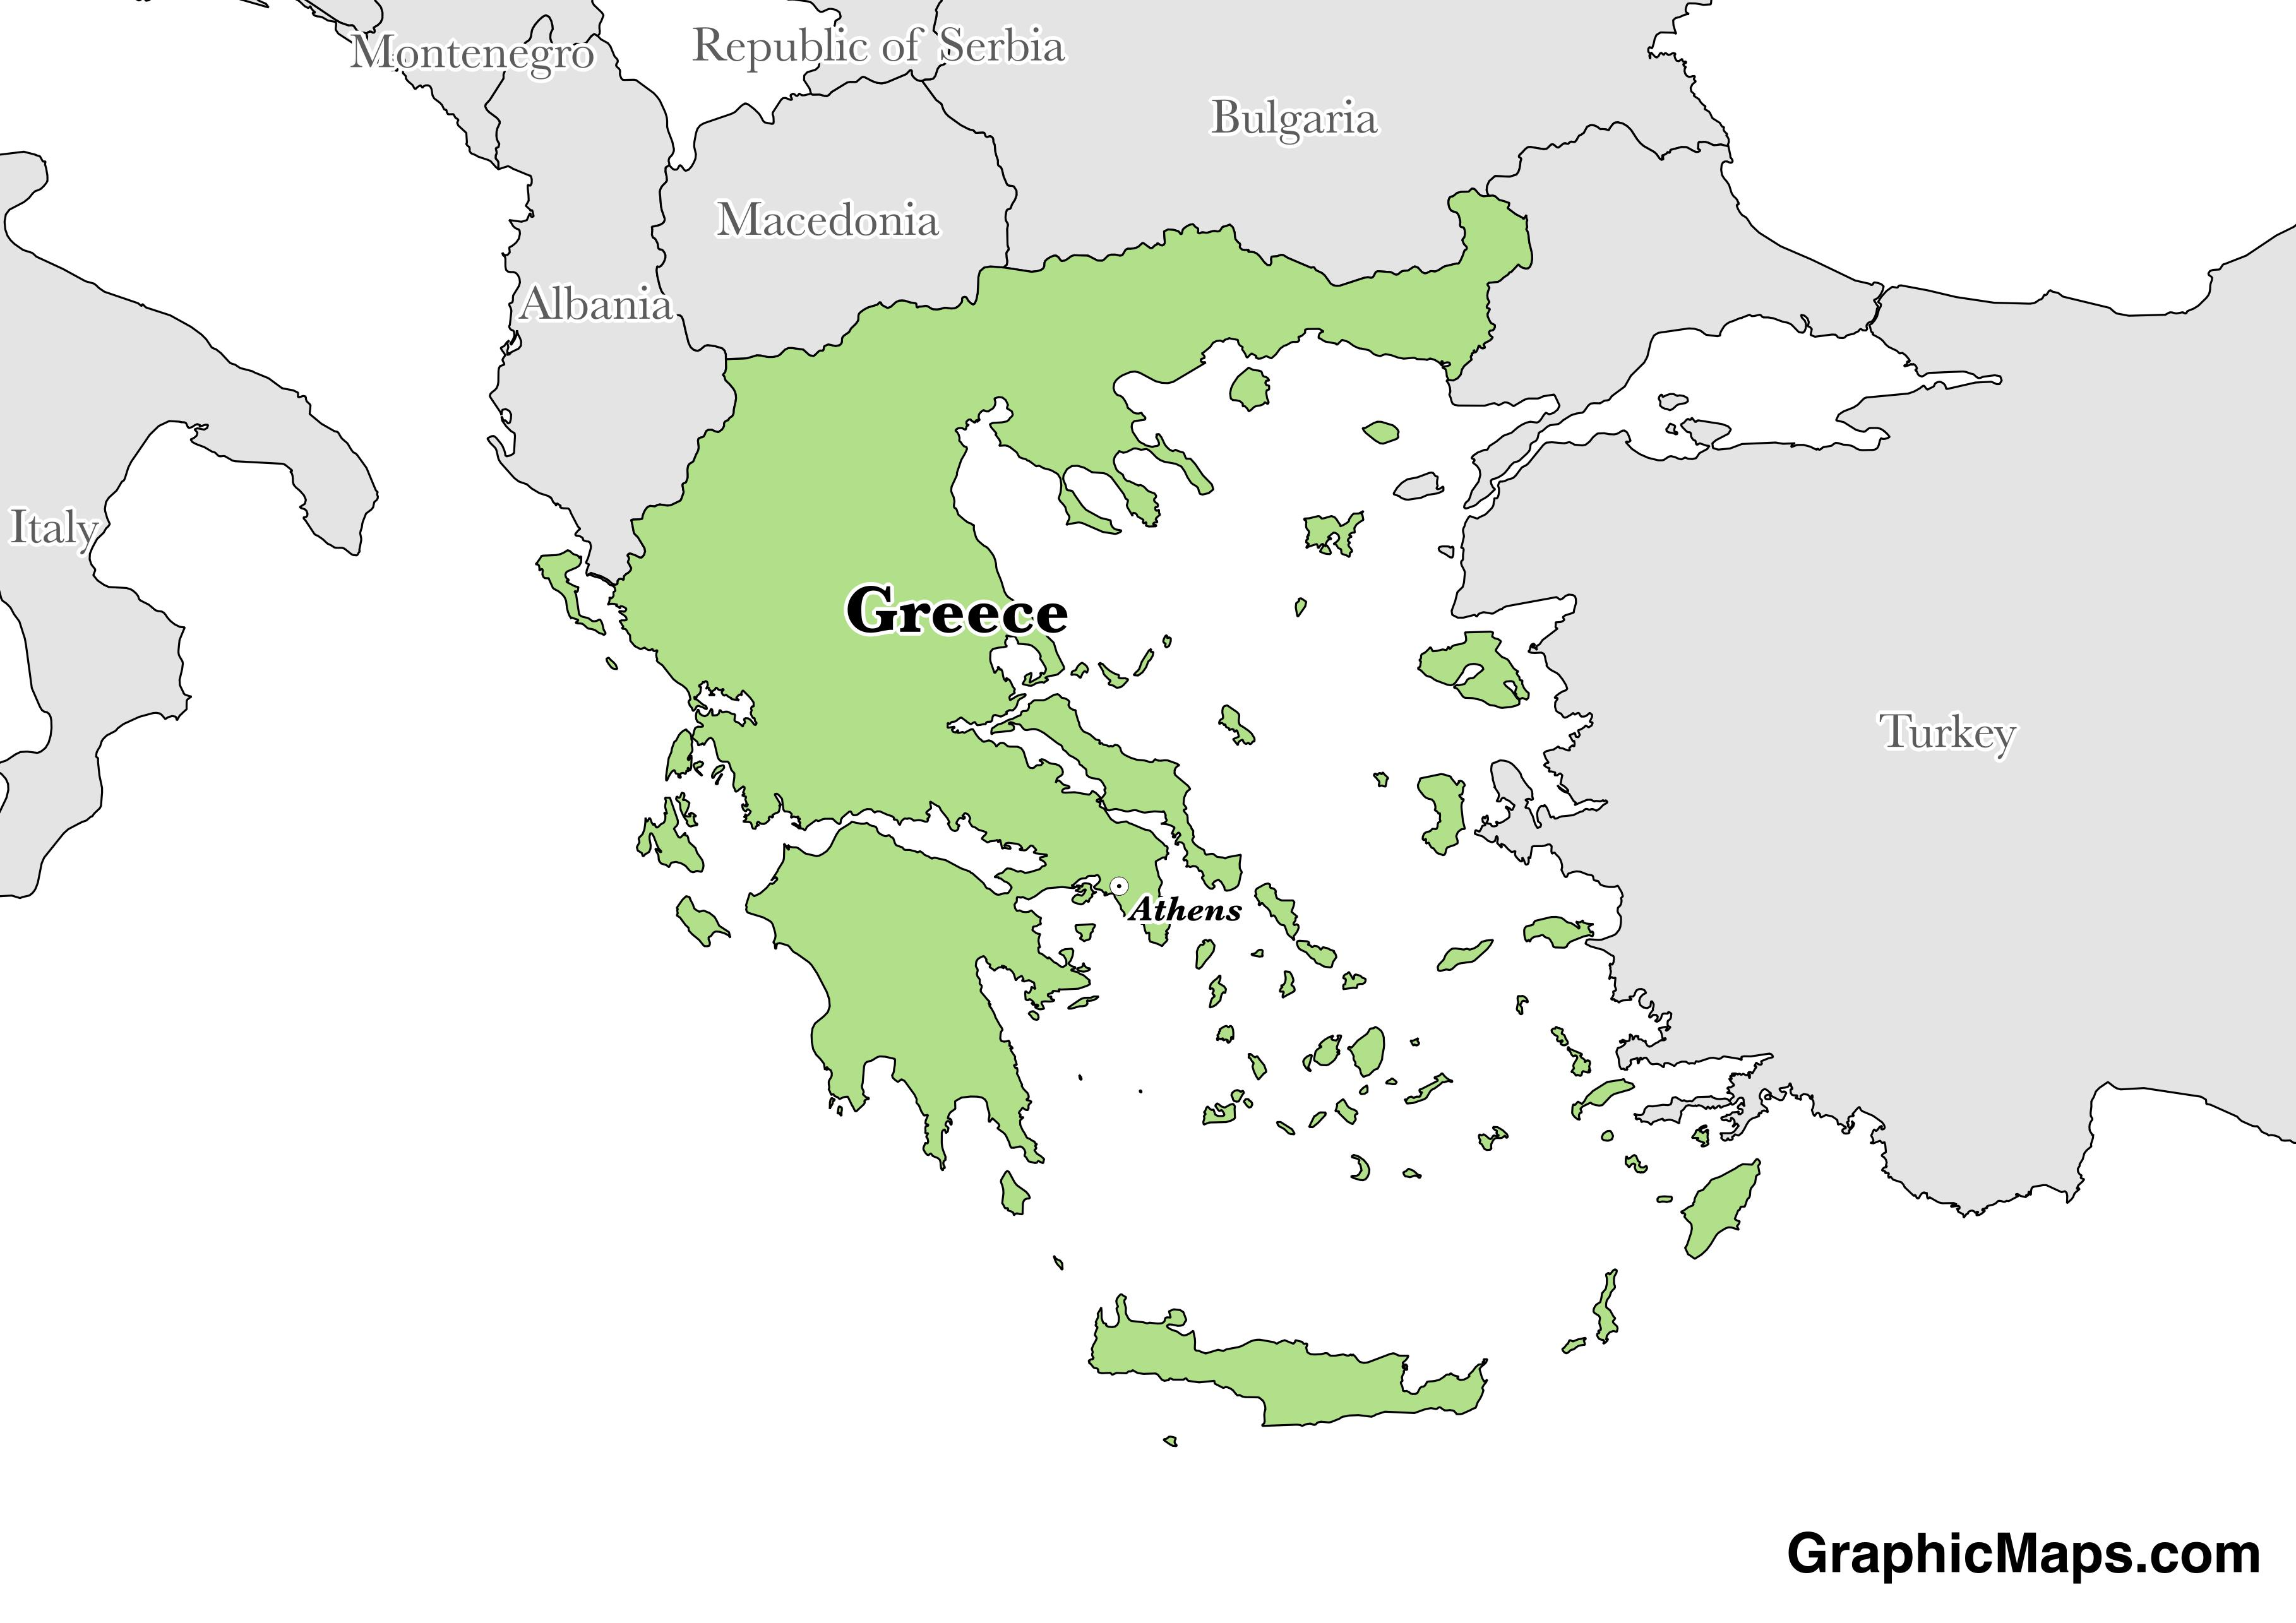 Map showing the location of Greece